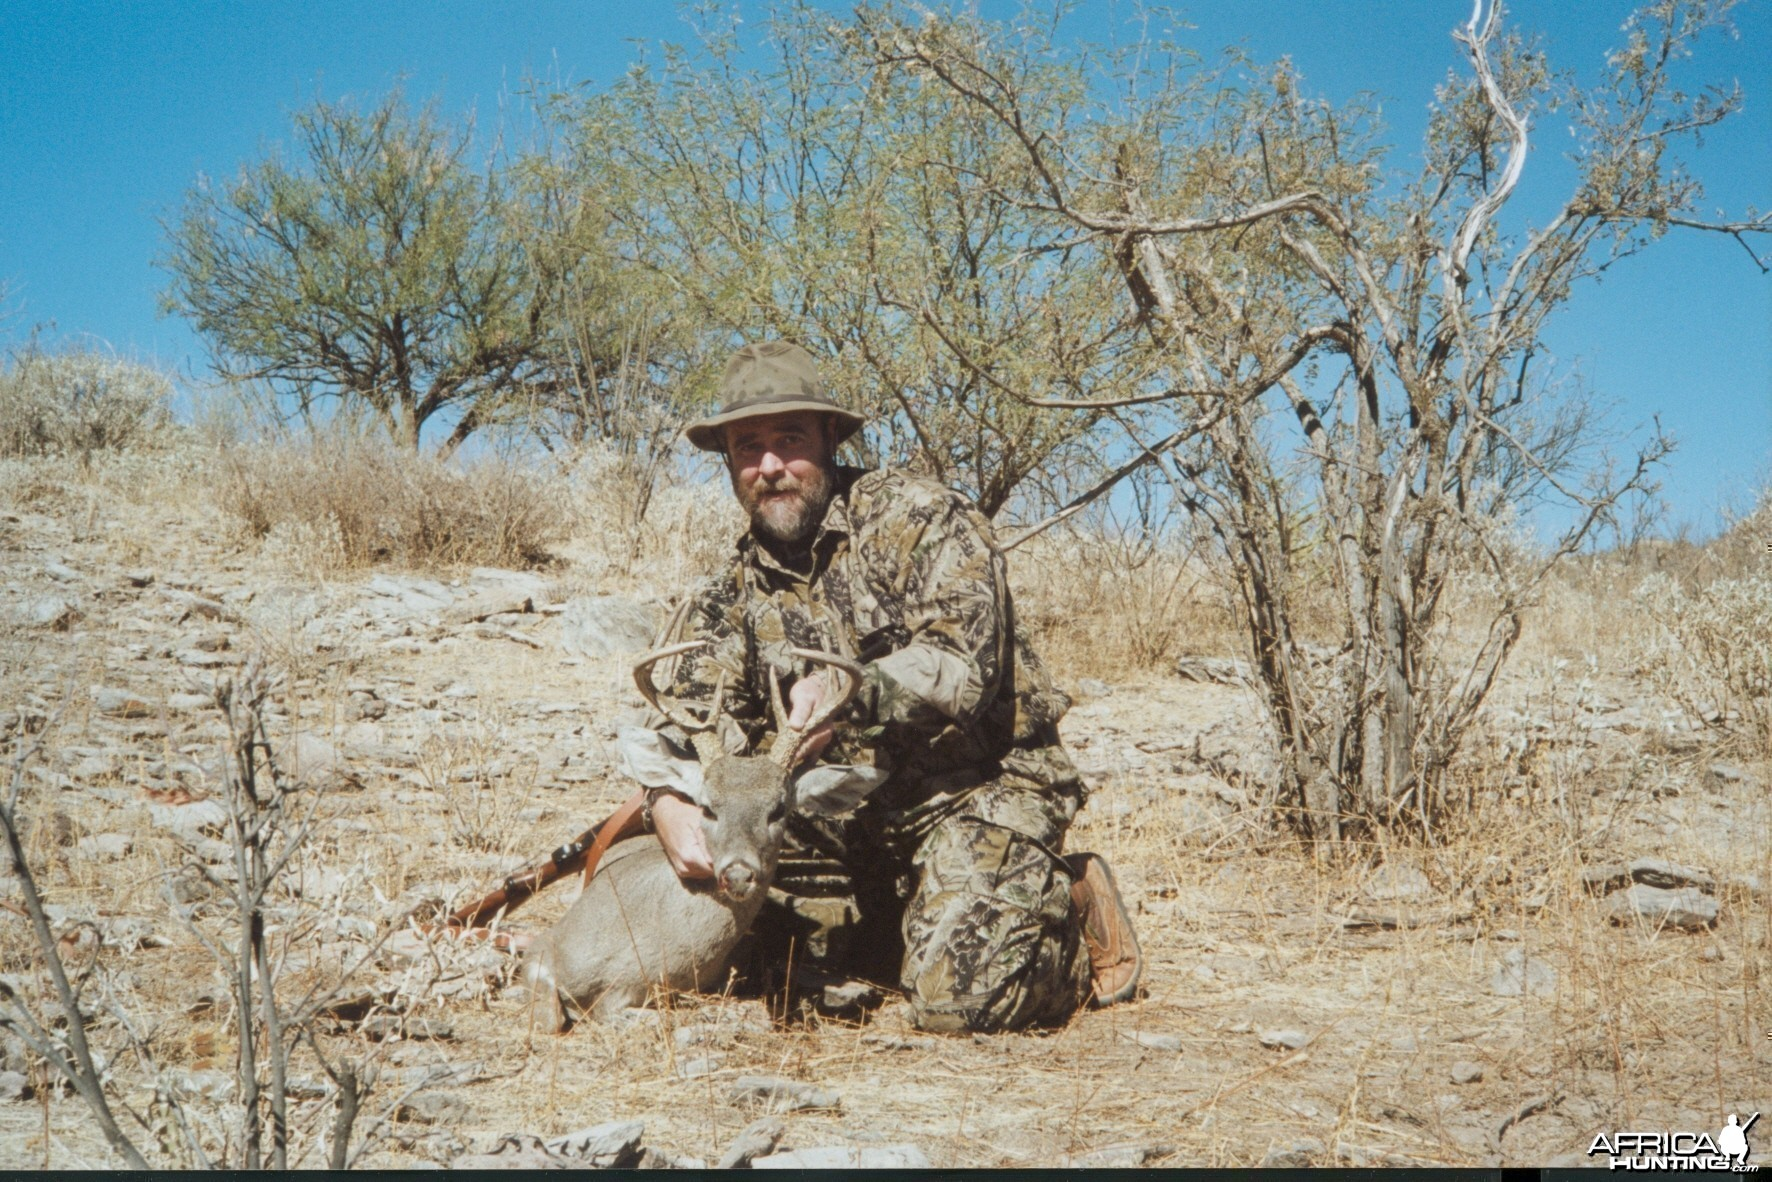 Coues deer hunt Sonora, Mexico